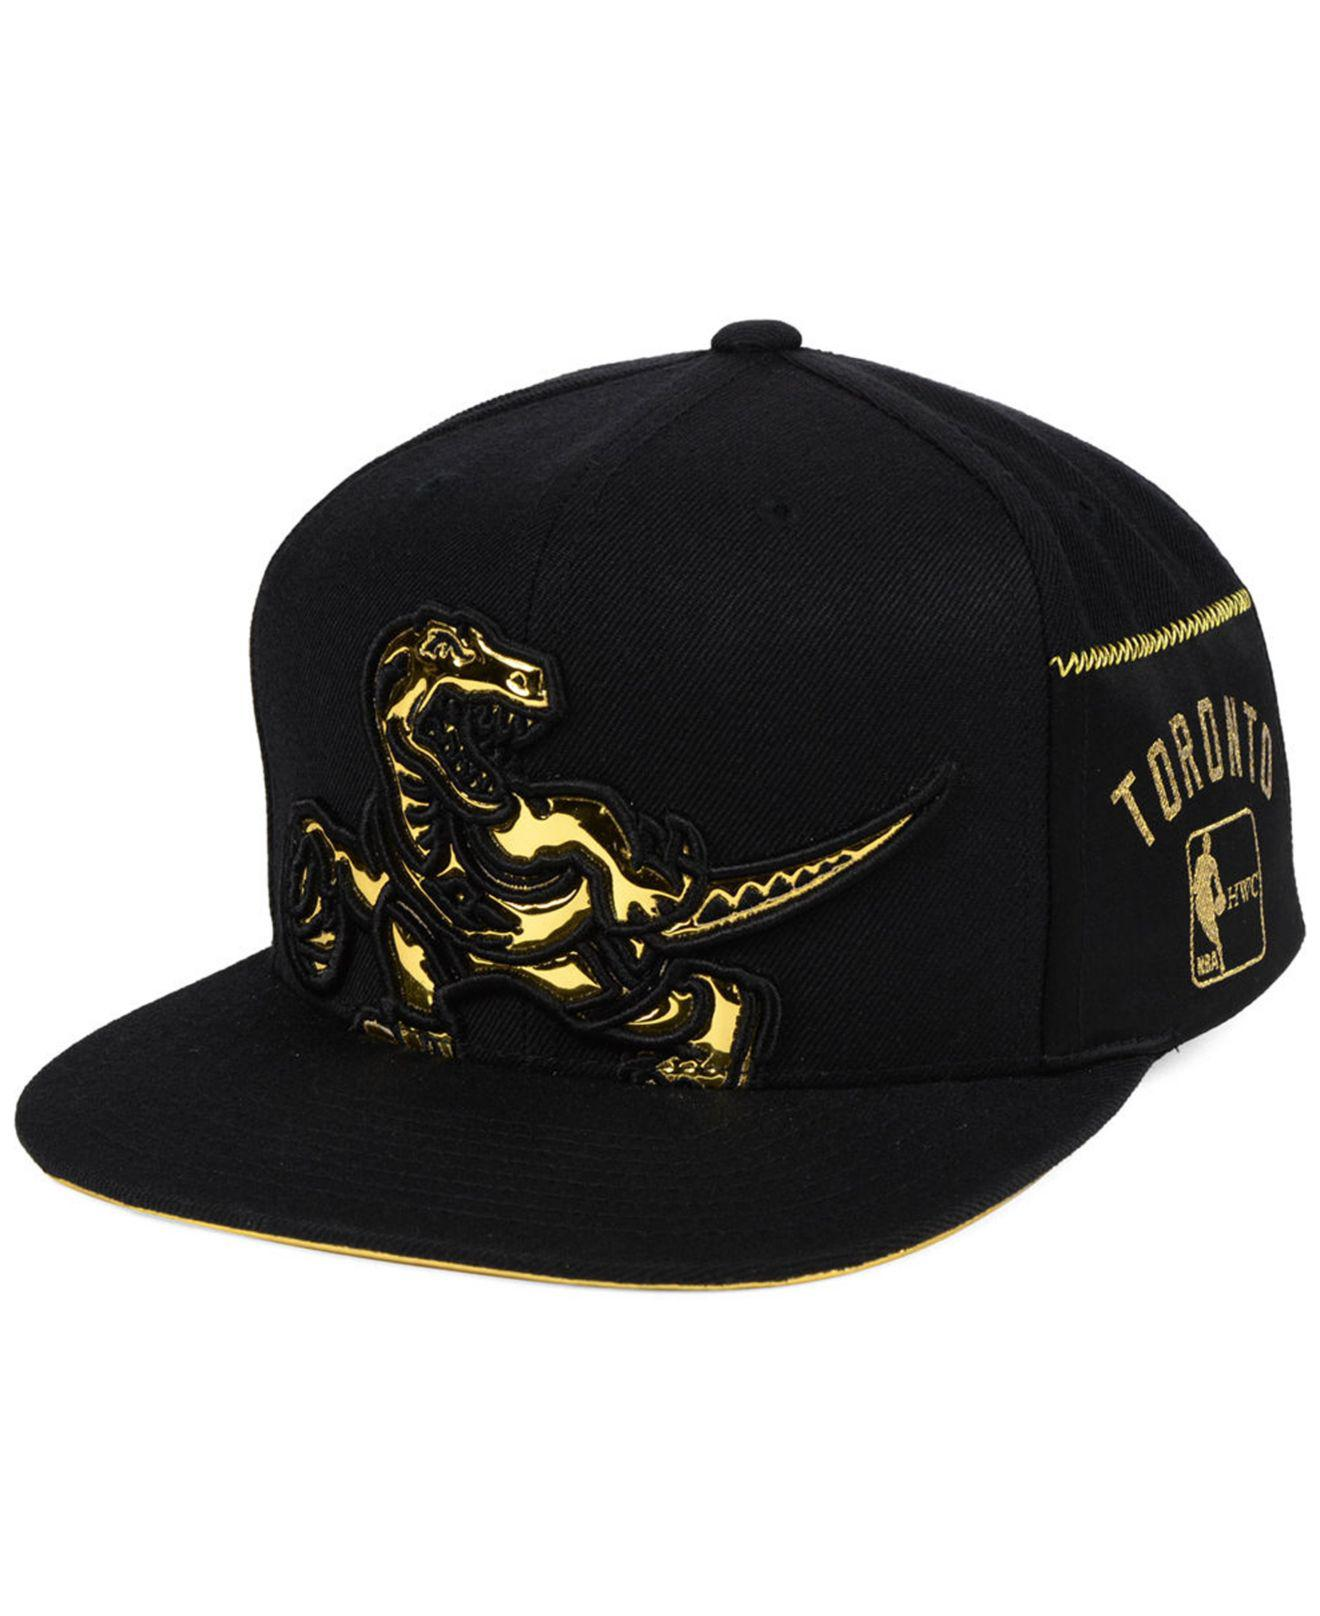 the best attitude ccb79 50fc7 Mitchell   Ness Toronto Raptors Patent Cropped Snapback Cap in Black ...